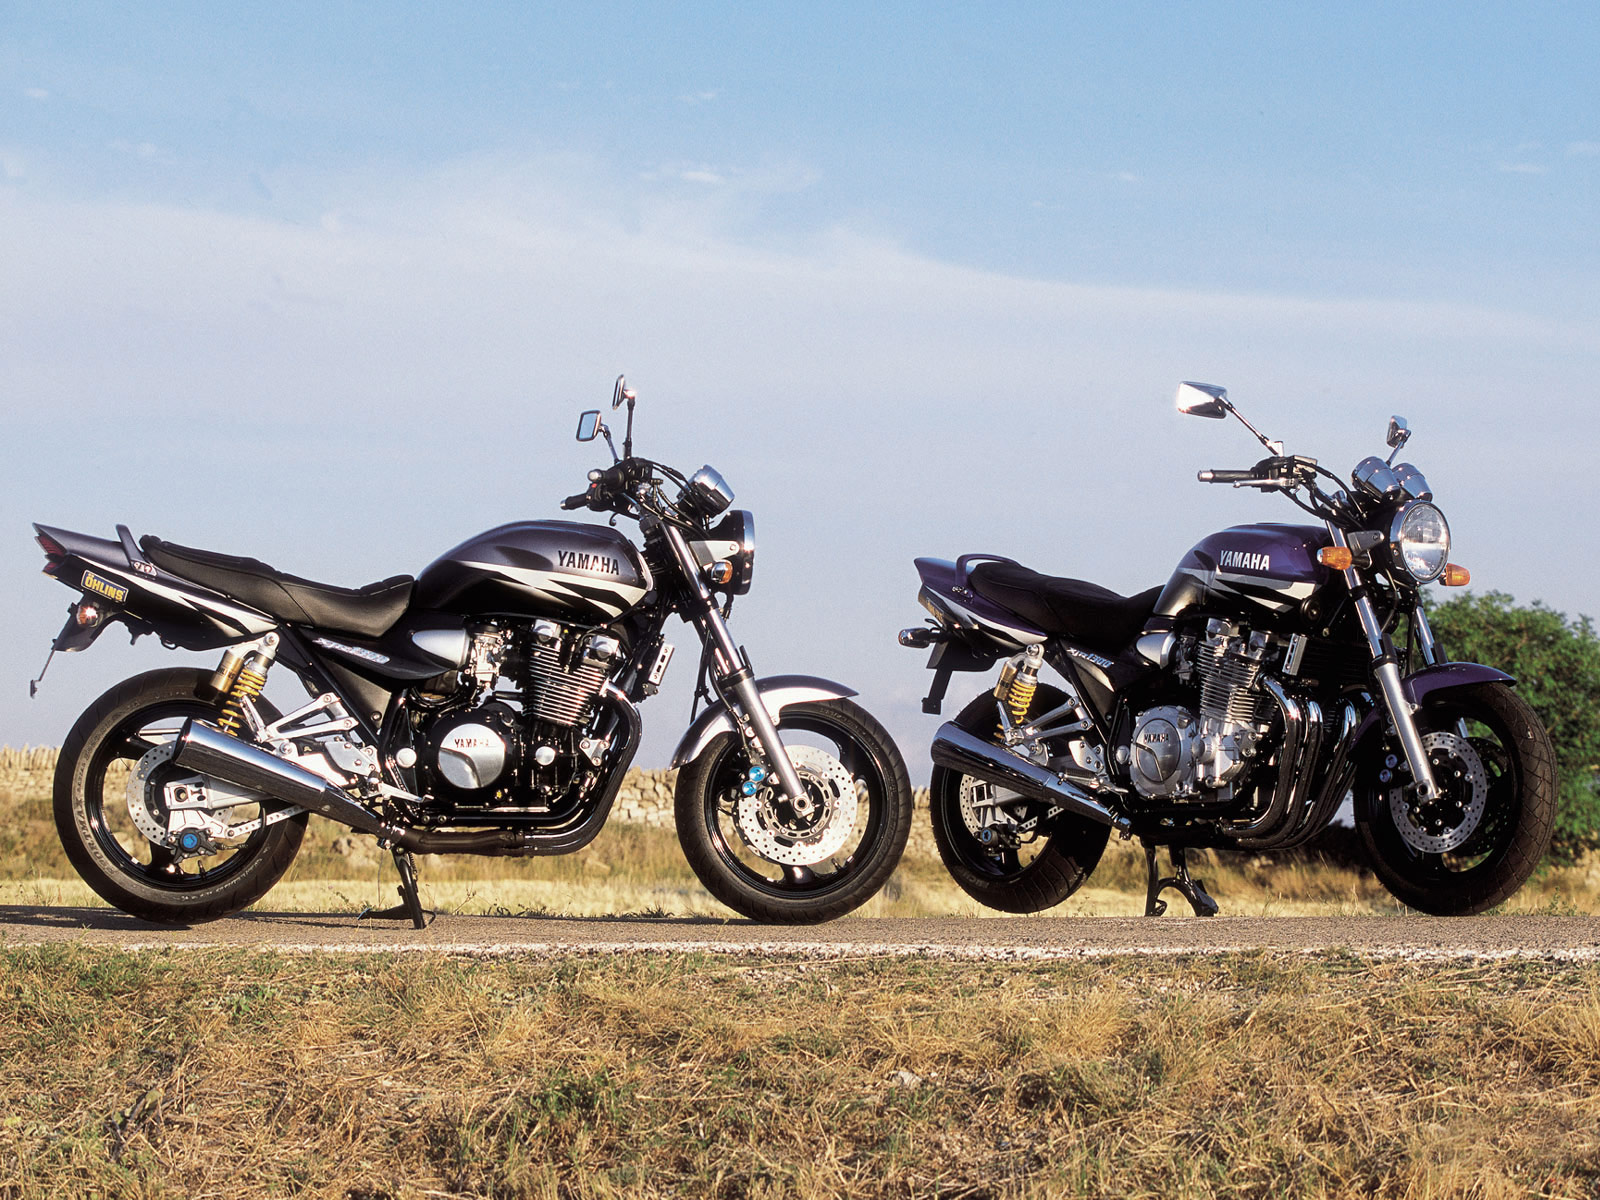 2002 YAMAHA XJR 1300 motorcycle wallpapers | accident lawyers